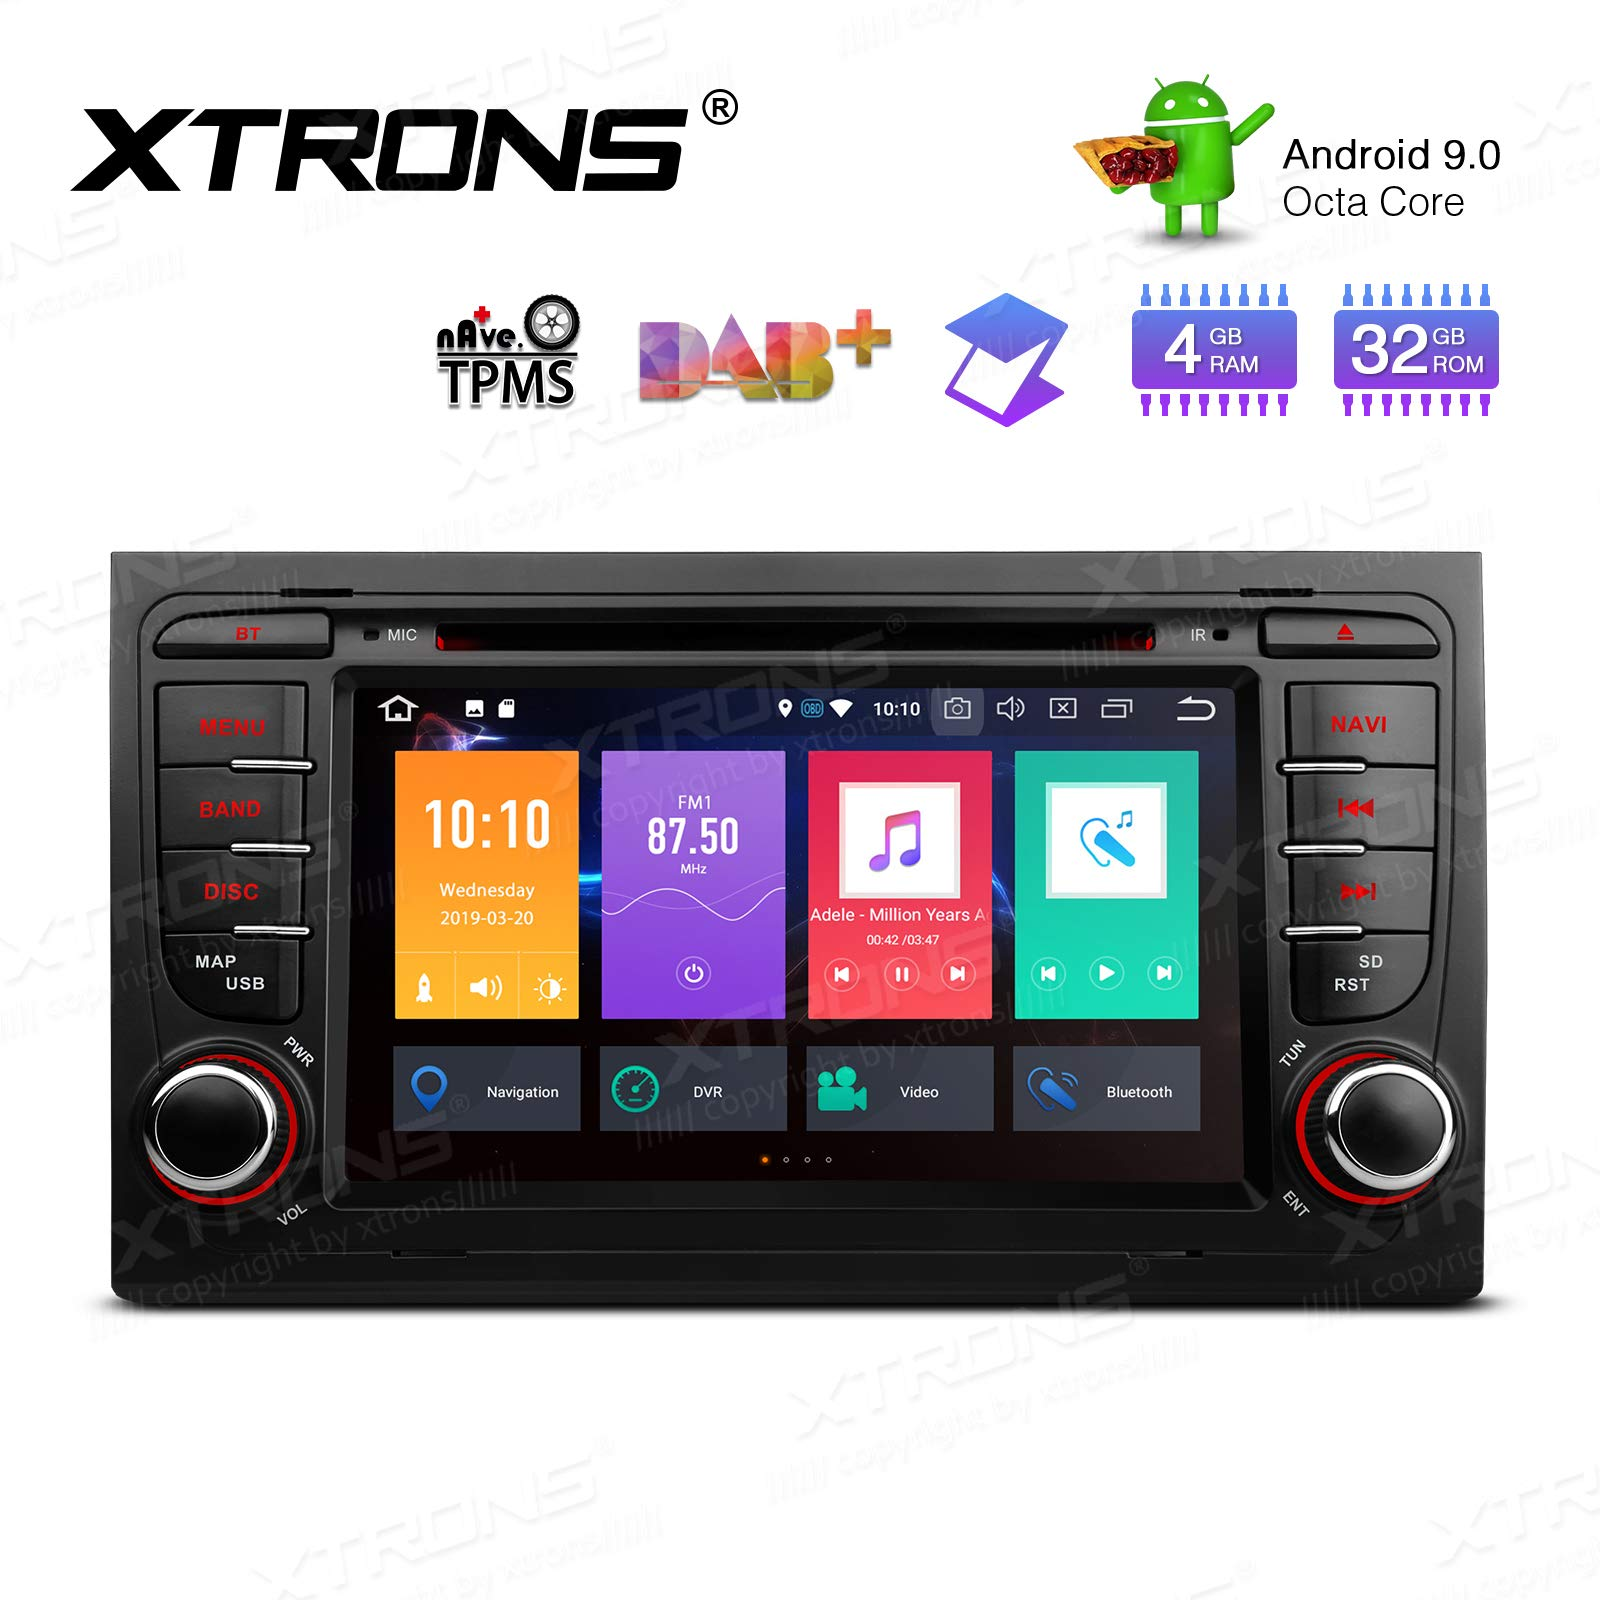 XTRONS-7-Android-Autoradio-mit-Touch-Screen-Android-90-Octa-Core-DVD-Player-untersttzt-4G-WiFi-Bluetooth-4GB-RAM-32GB-ROM-DAB-OBD2-CAR-Auto-Play-TPMS-Musik-Streaming-FR-Audi